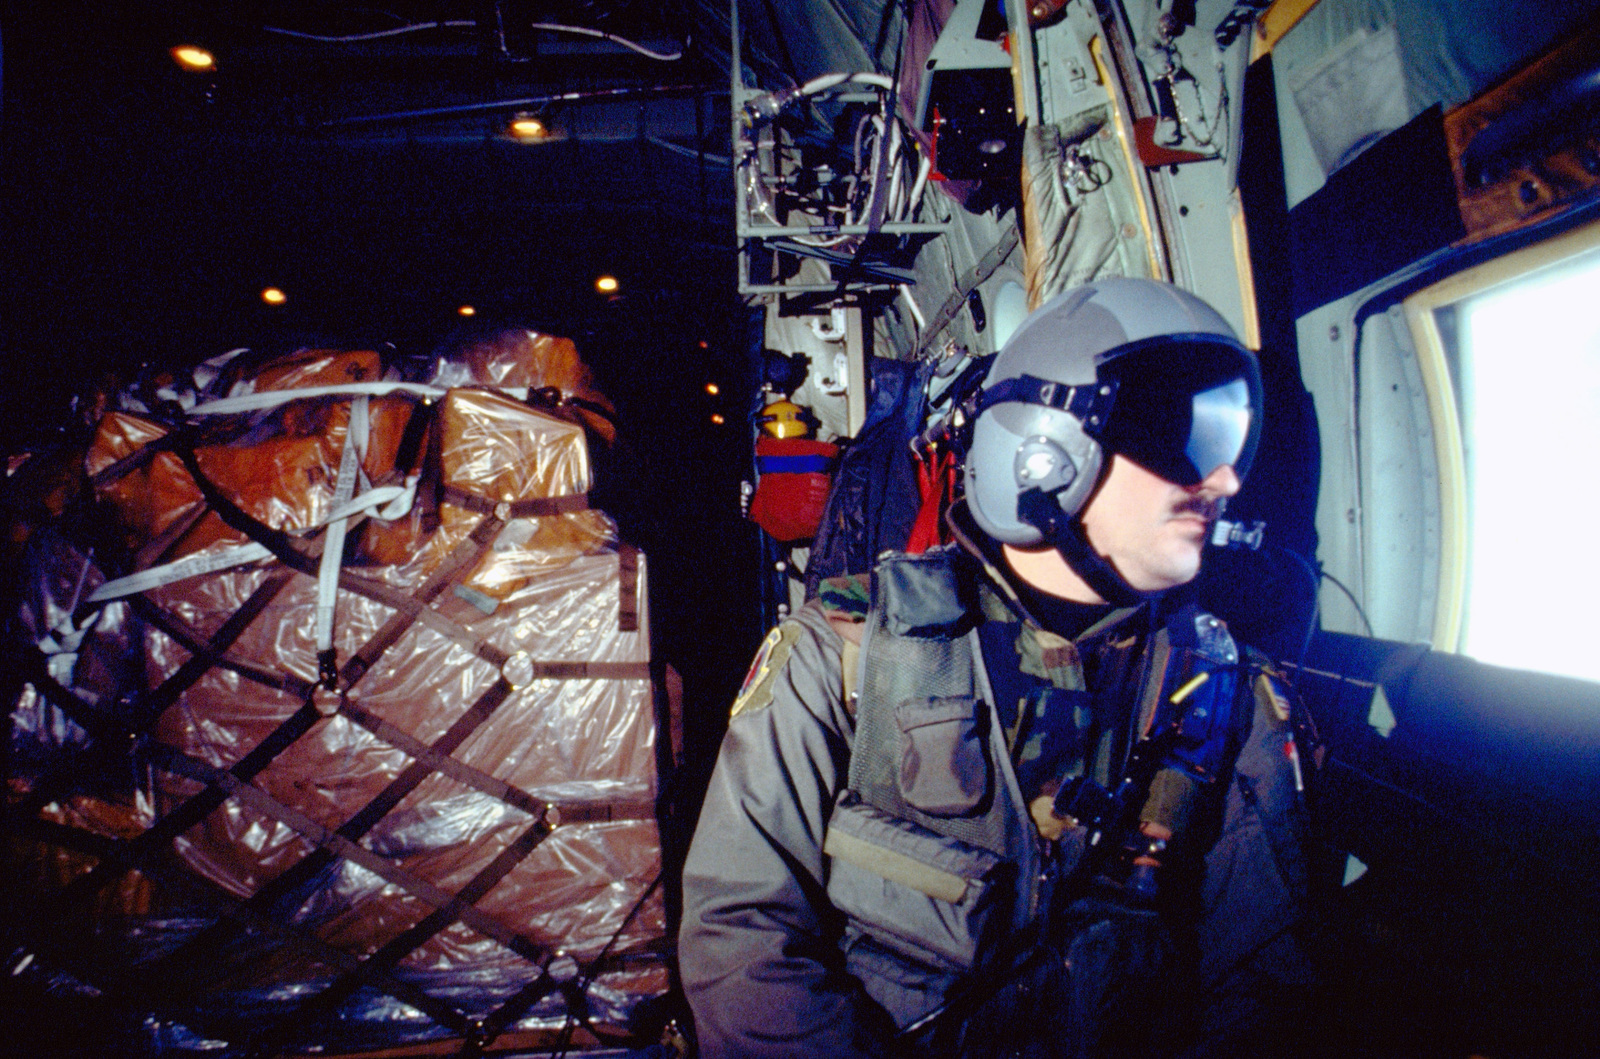 Loadmaster, MASTER Sergeant Kevin Hanoi from the 50th Airlift Squadron, Little Rock AFB, Arkansas, keeps alert as he watches out the window of the C-130 Hercules aircraft for hostile action such as Surface to Air (SAM) missiles and Anti-Aircraft Armament (AAA). If hostile action is seen MASTER SGT. Hanoi notifies the pilot who would take evasive action or fire a flare. The 50th AS is on temporary duty from Arkansas to Ramstein. Wearing flight helmets, kevlar and life survival vests, the crew flies missions from Ramstein Air Base, Germany into Bosnia-Herzegovina in support of the Implementation Force (IFOR) mission. The IFOR mission is to ensure that the former warring nations of Serbia, ...